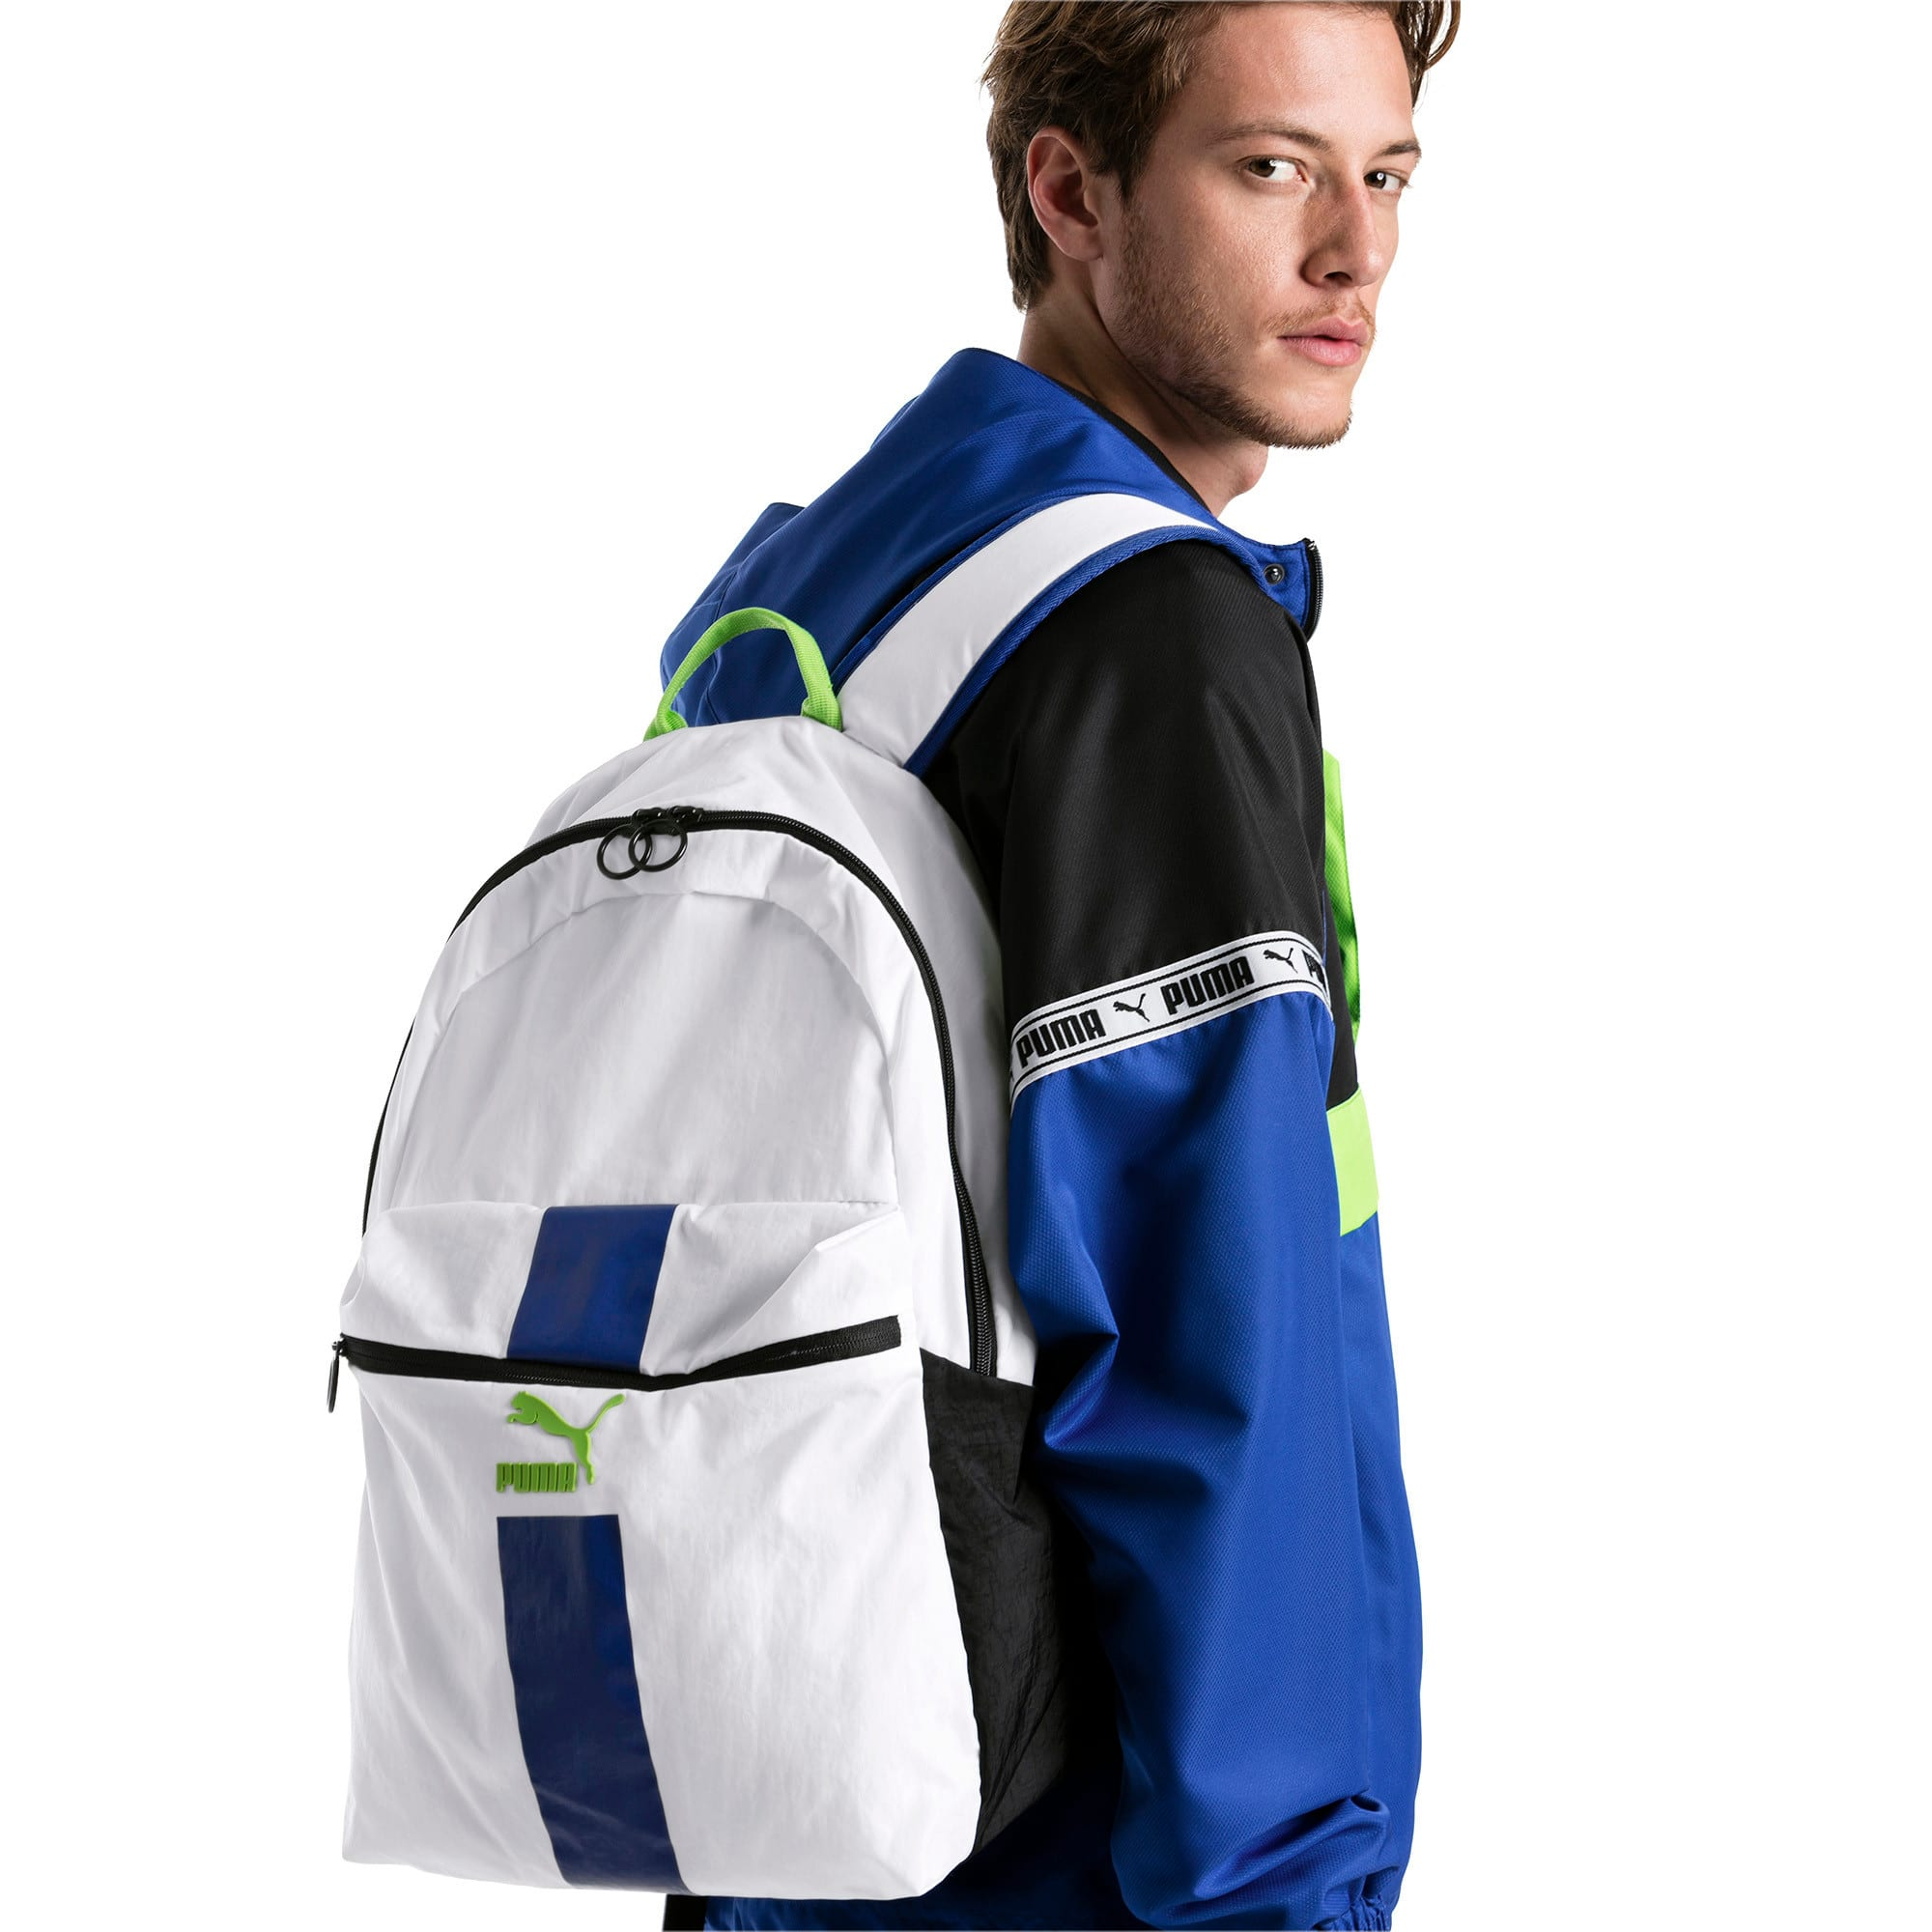 Thumbnail 2 of Originals Daypack, Puma White, medium